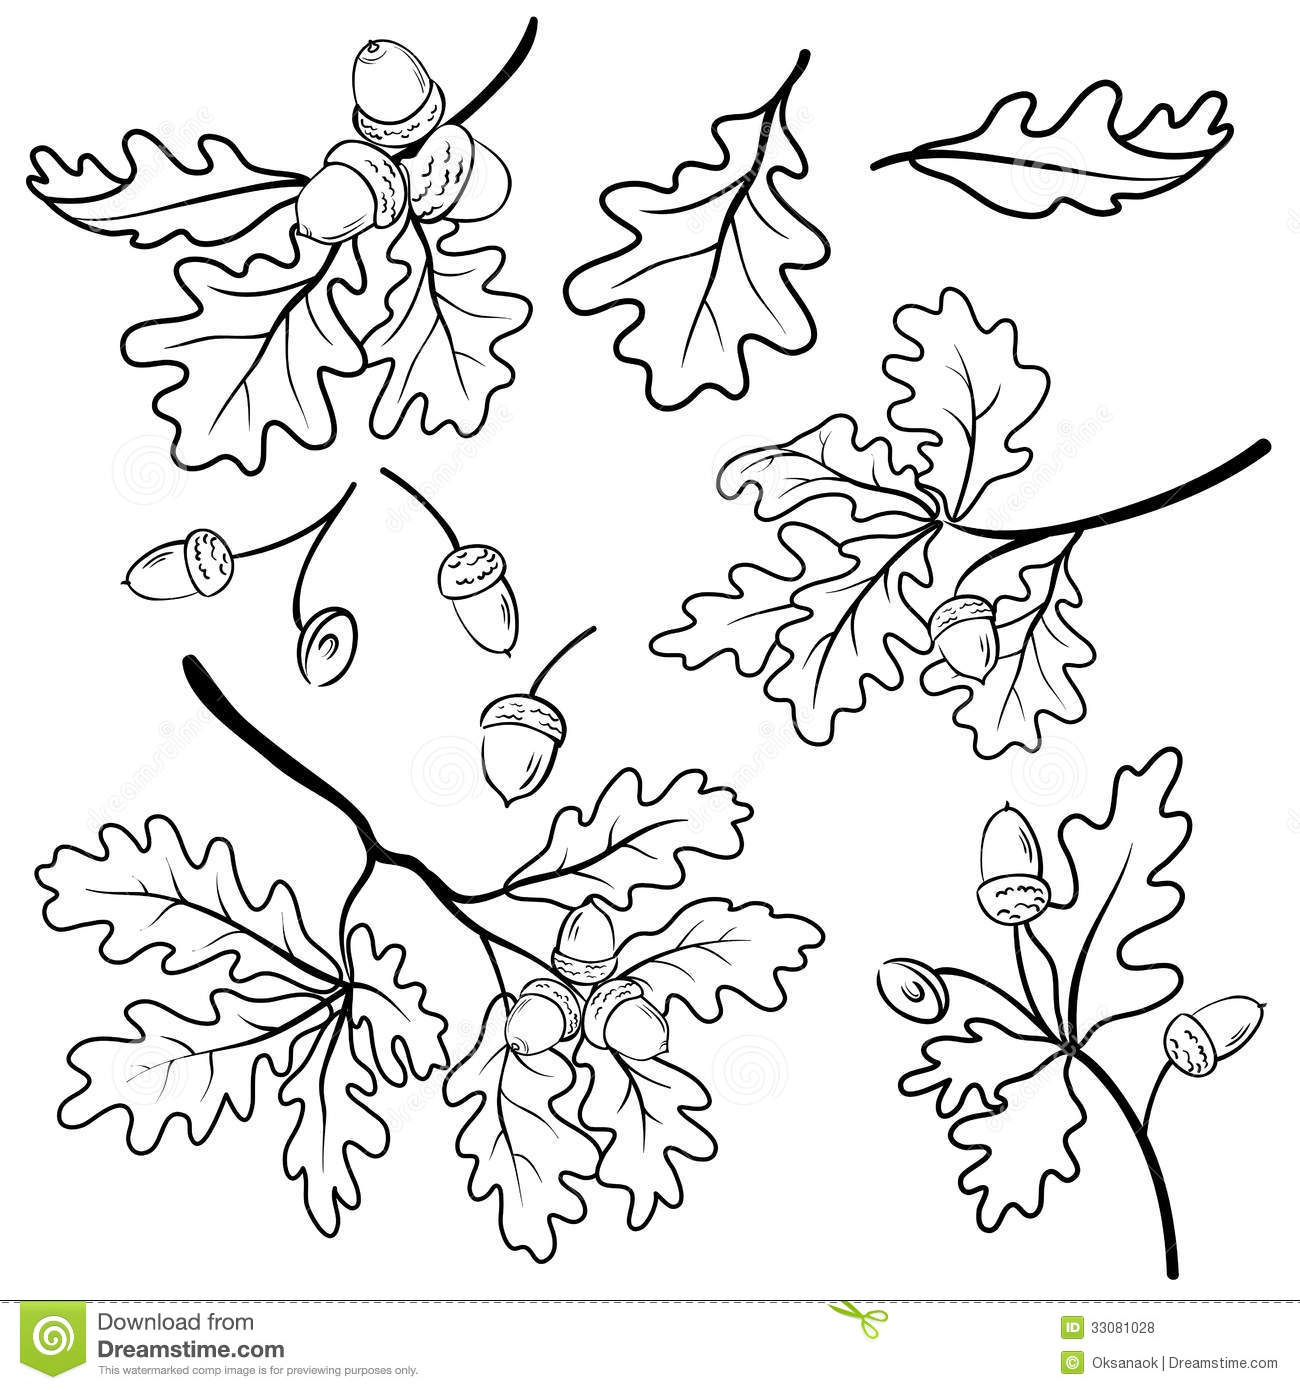 Oak Branches With Acorns Outline Royalty Free Stock